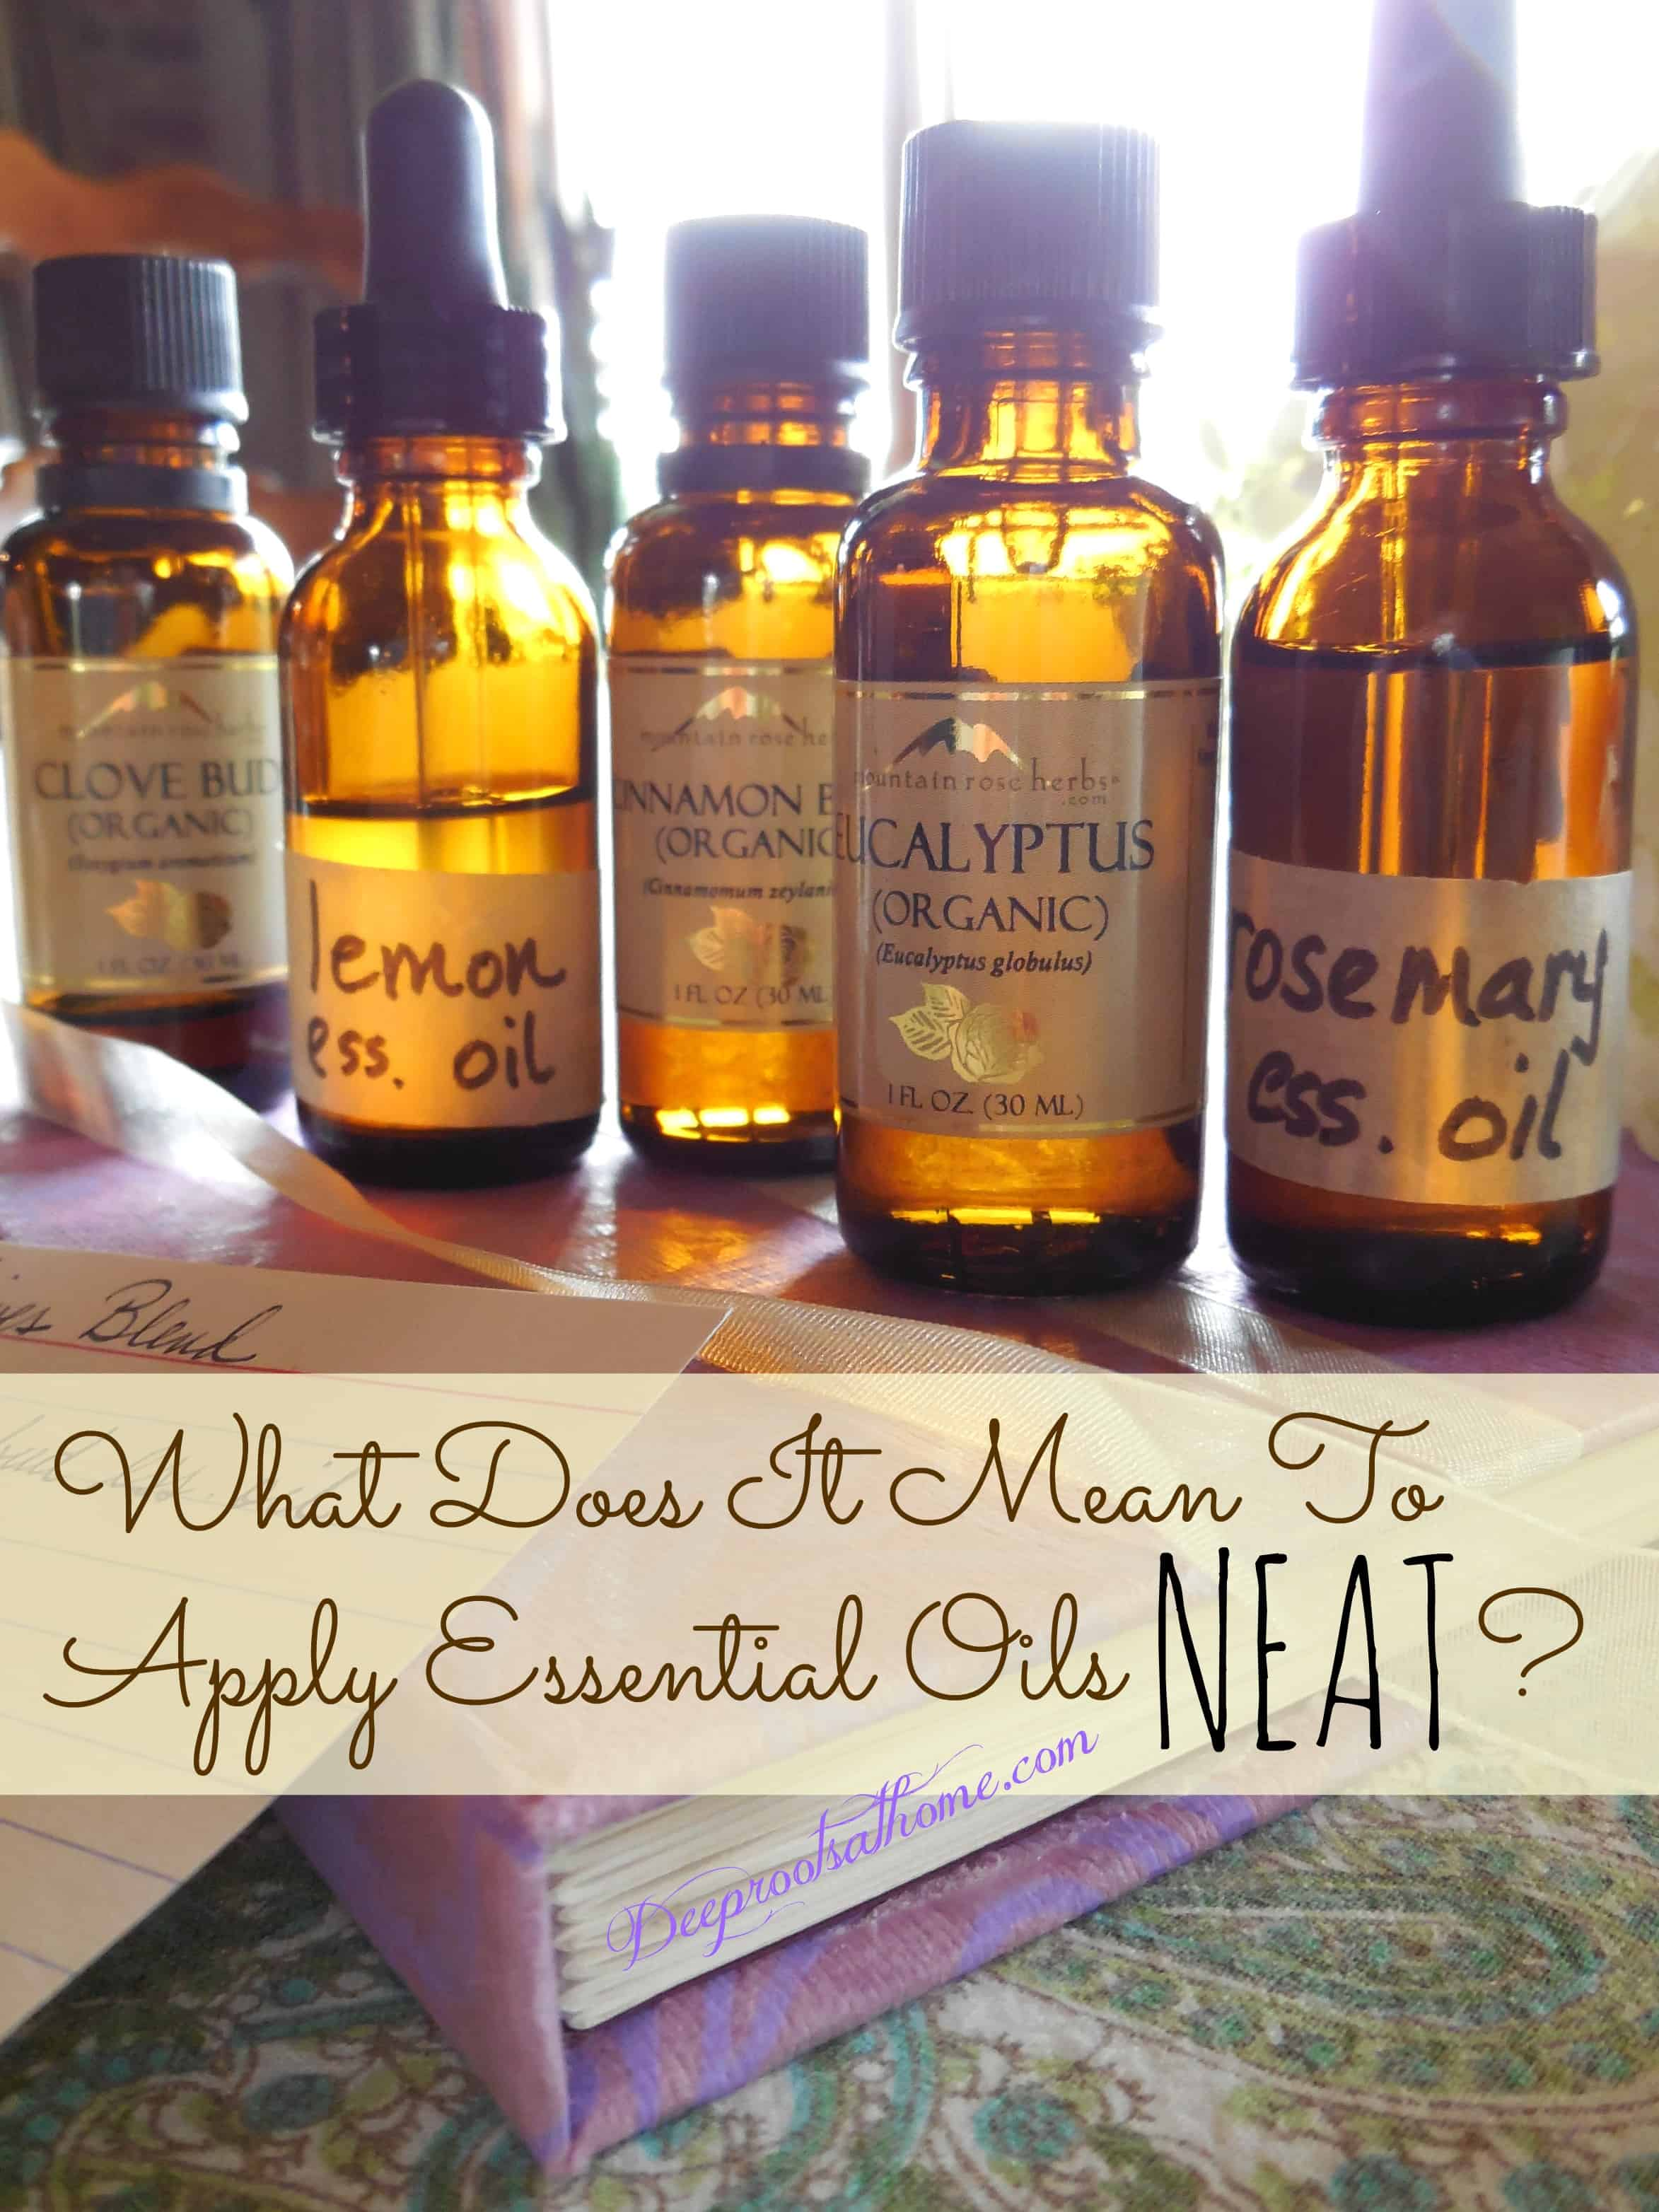 What Does It Mean To Apply Essential Oils Neat? Essential Oils of Thieves blend